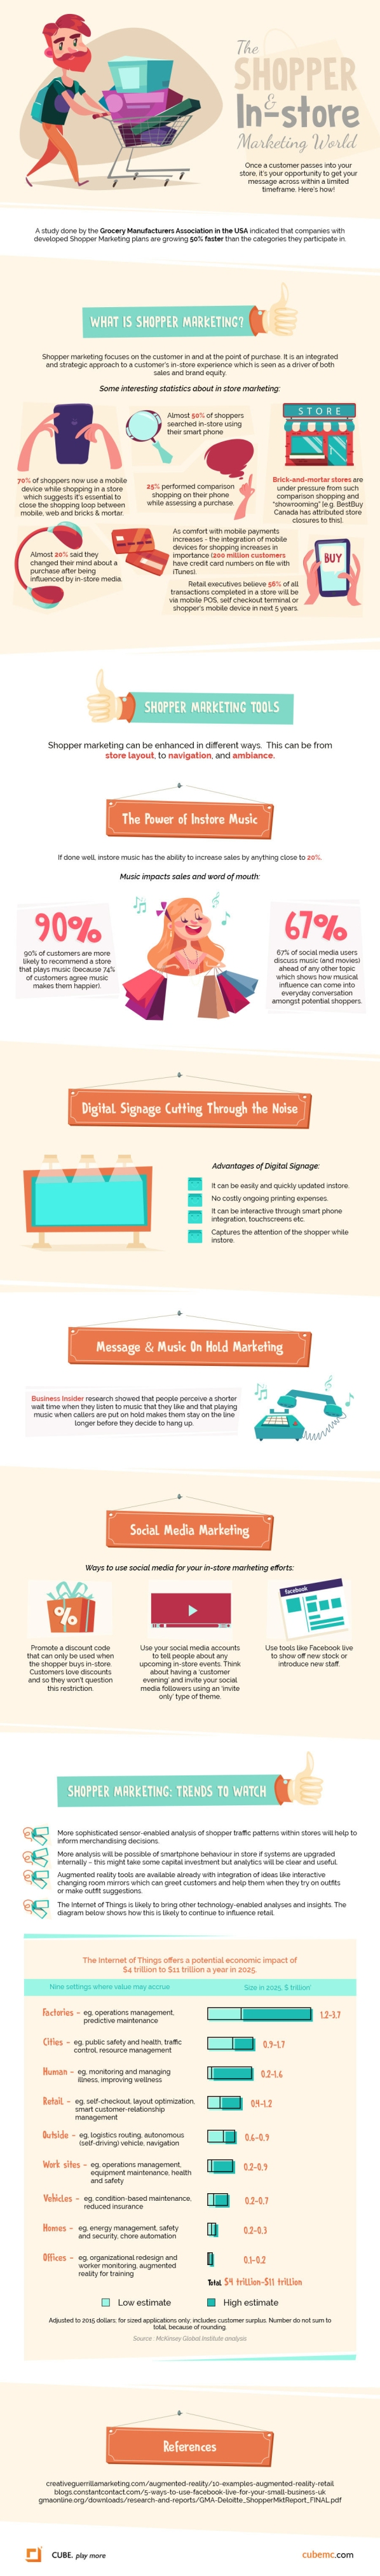 Shopper-Marketing- infographic